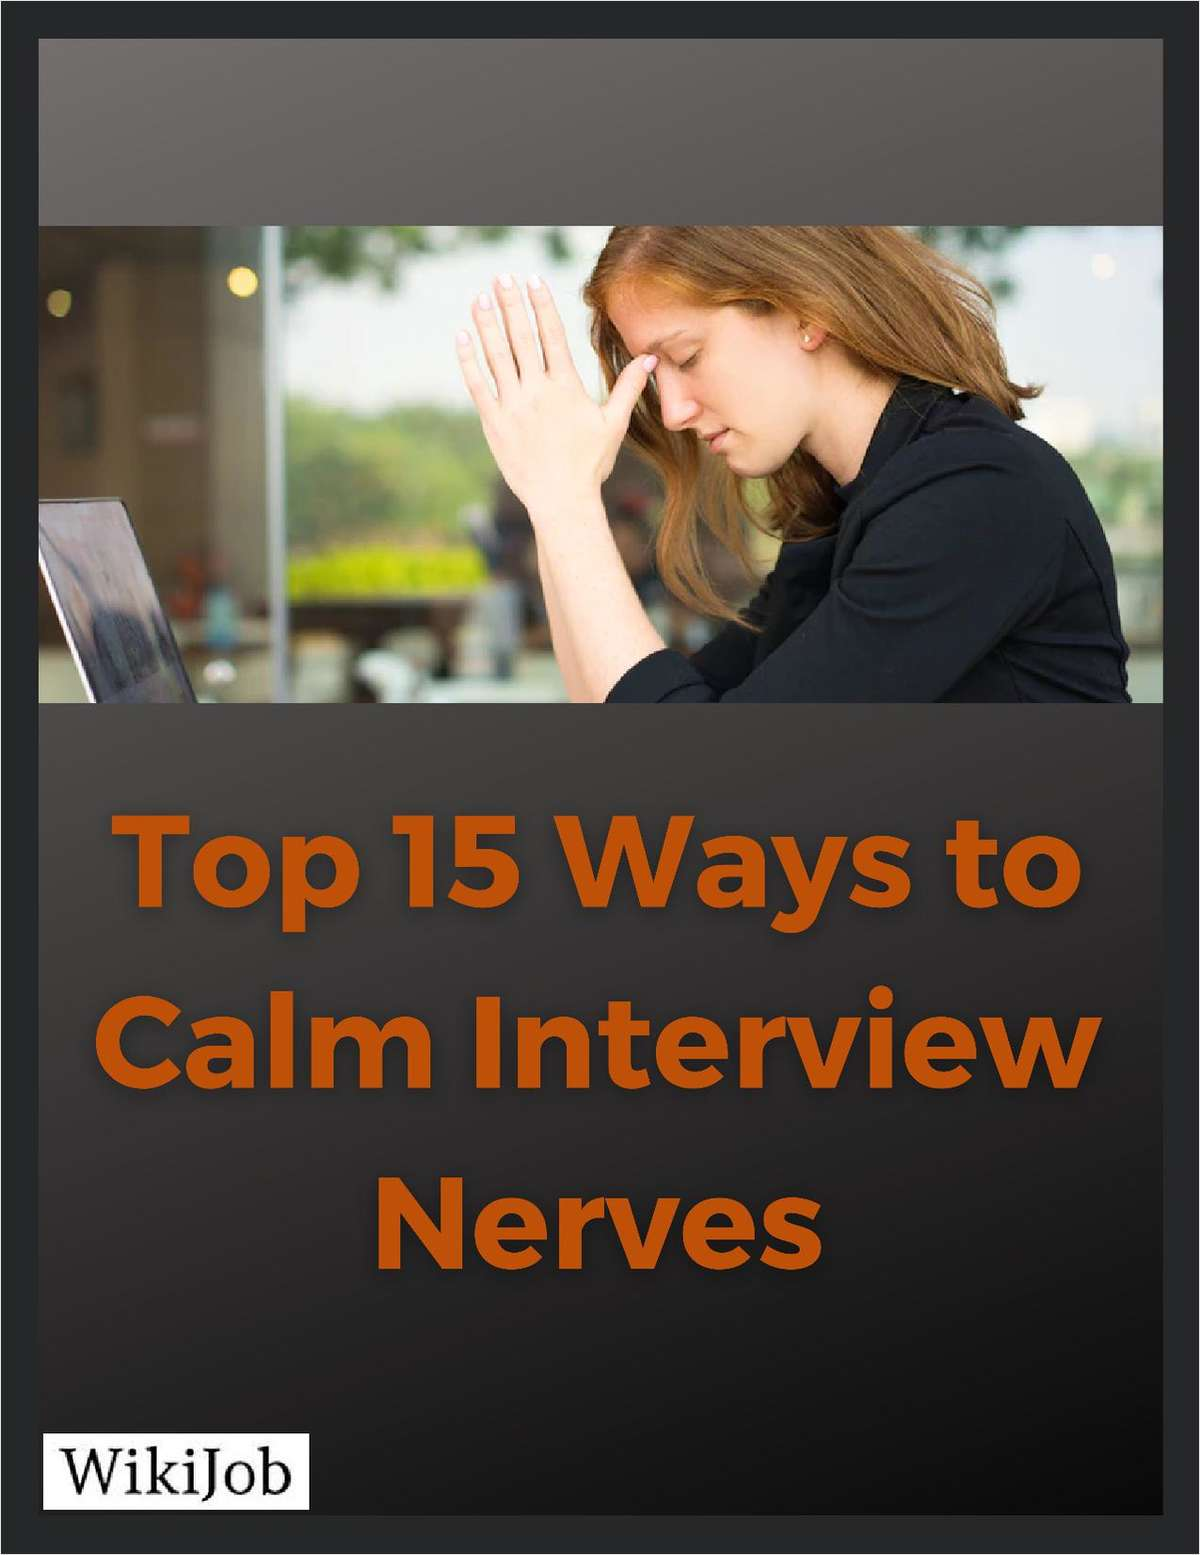 Top 15 Ways to Calm Interview Nerves